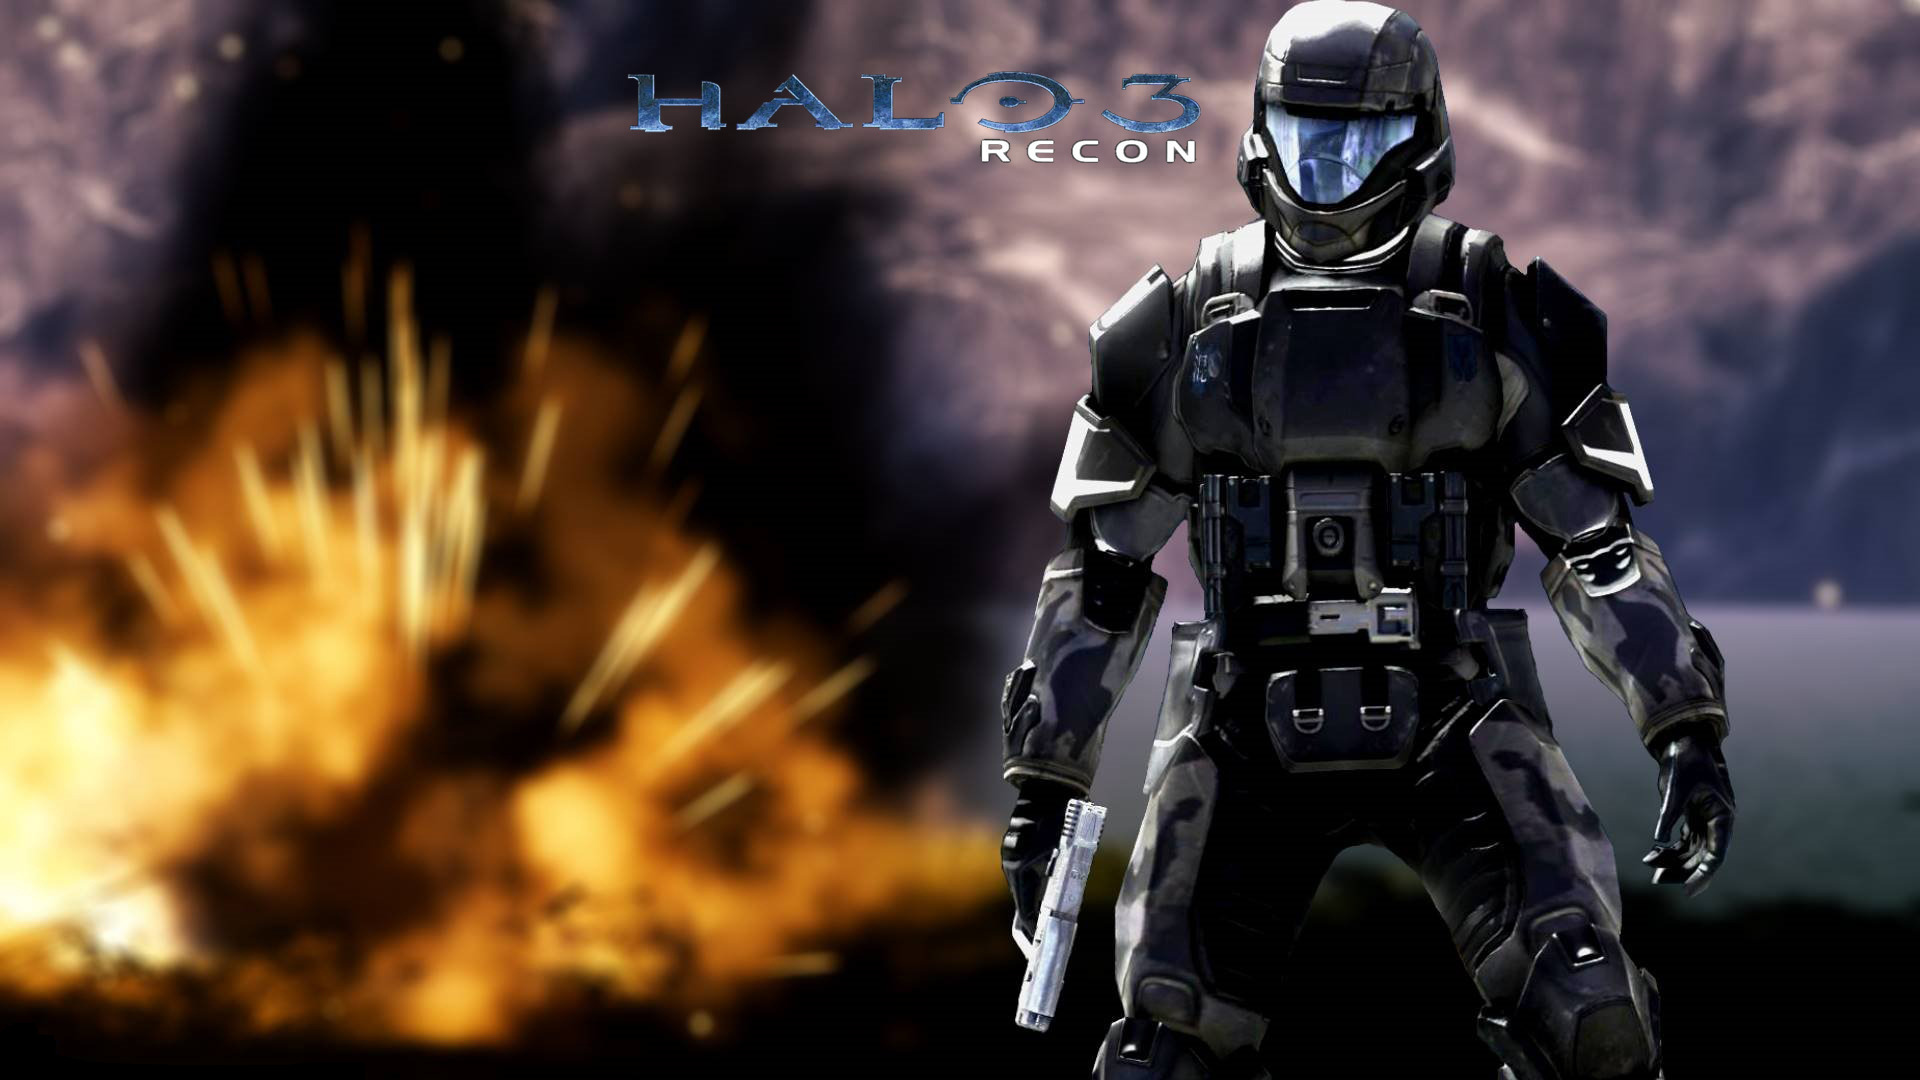 Halo 3 Wallpapers 1920x1080